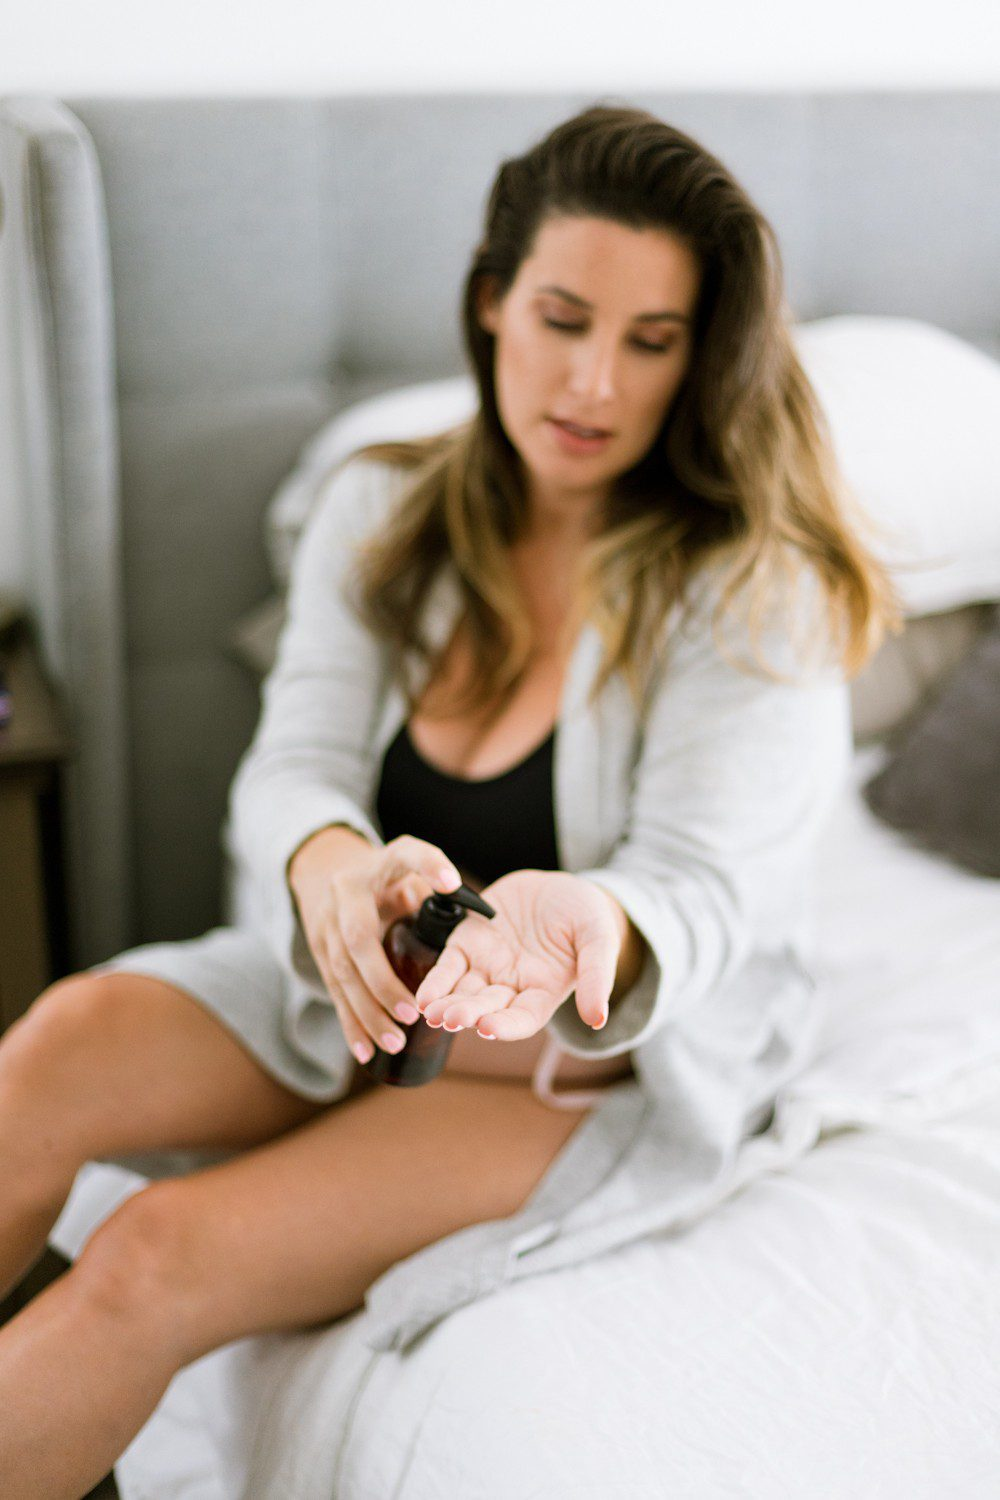 Top 10 Essential Oils While Pregnant That are Completely Safe by popular Florida lifestyle blog, Fresh Mommy: image of woman sitting on her bed in a grey robe, black sports bra, and black underwear and applying some essential oils to her hand from a brown glass dispenser.